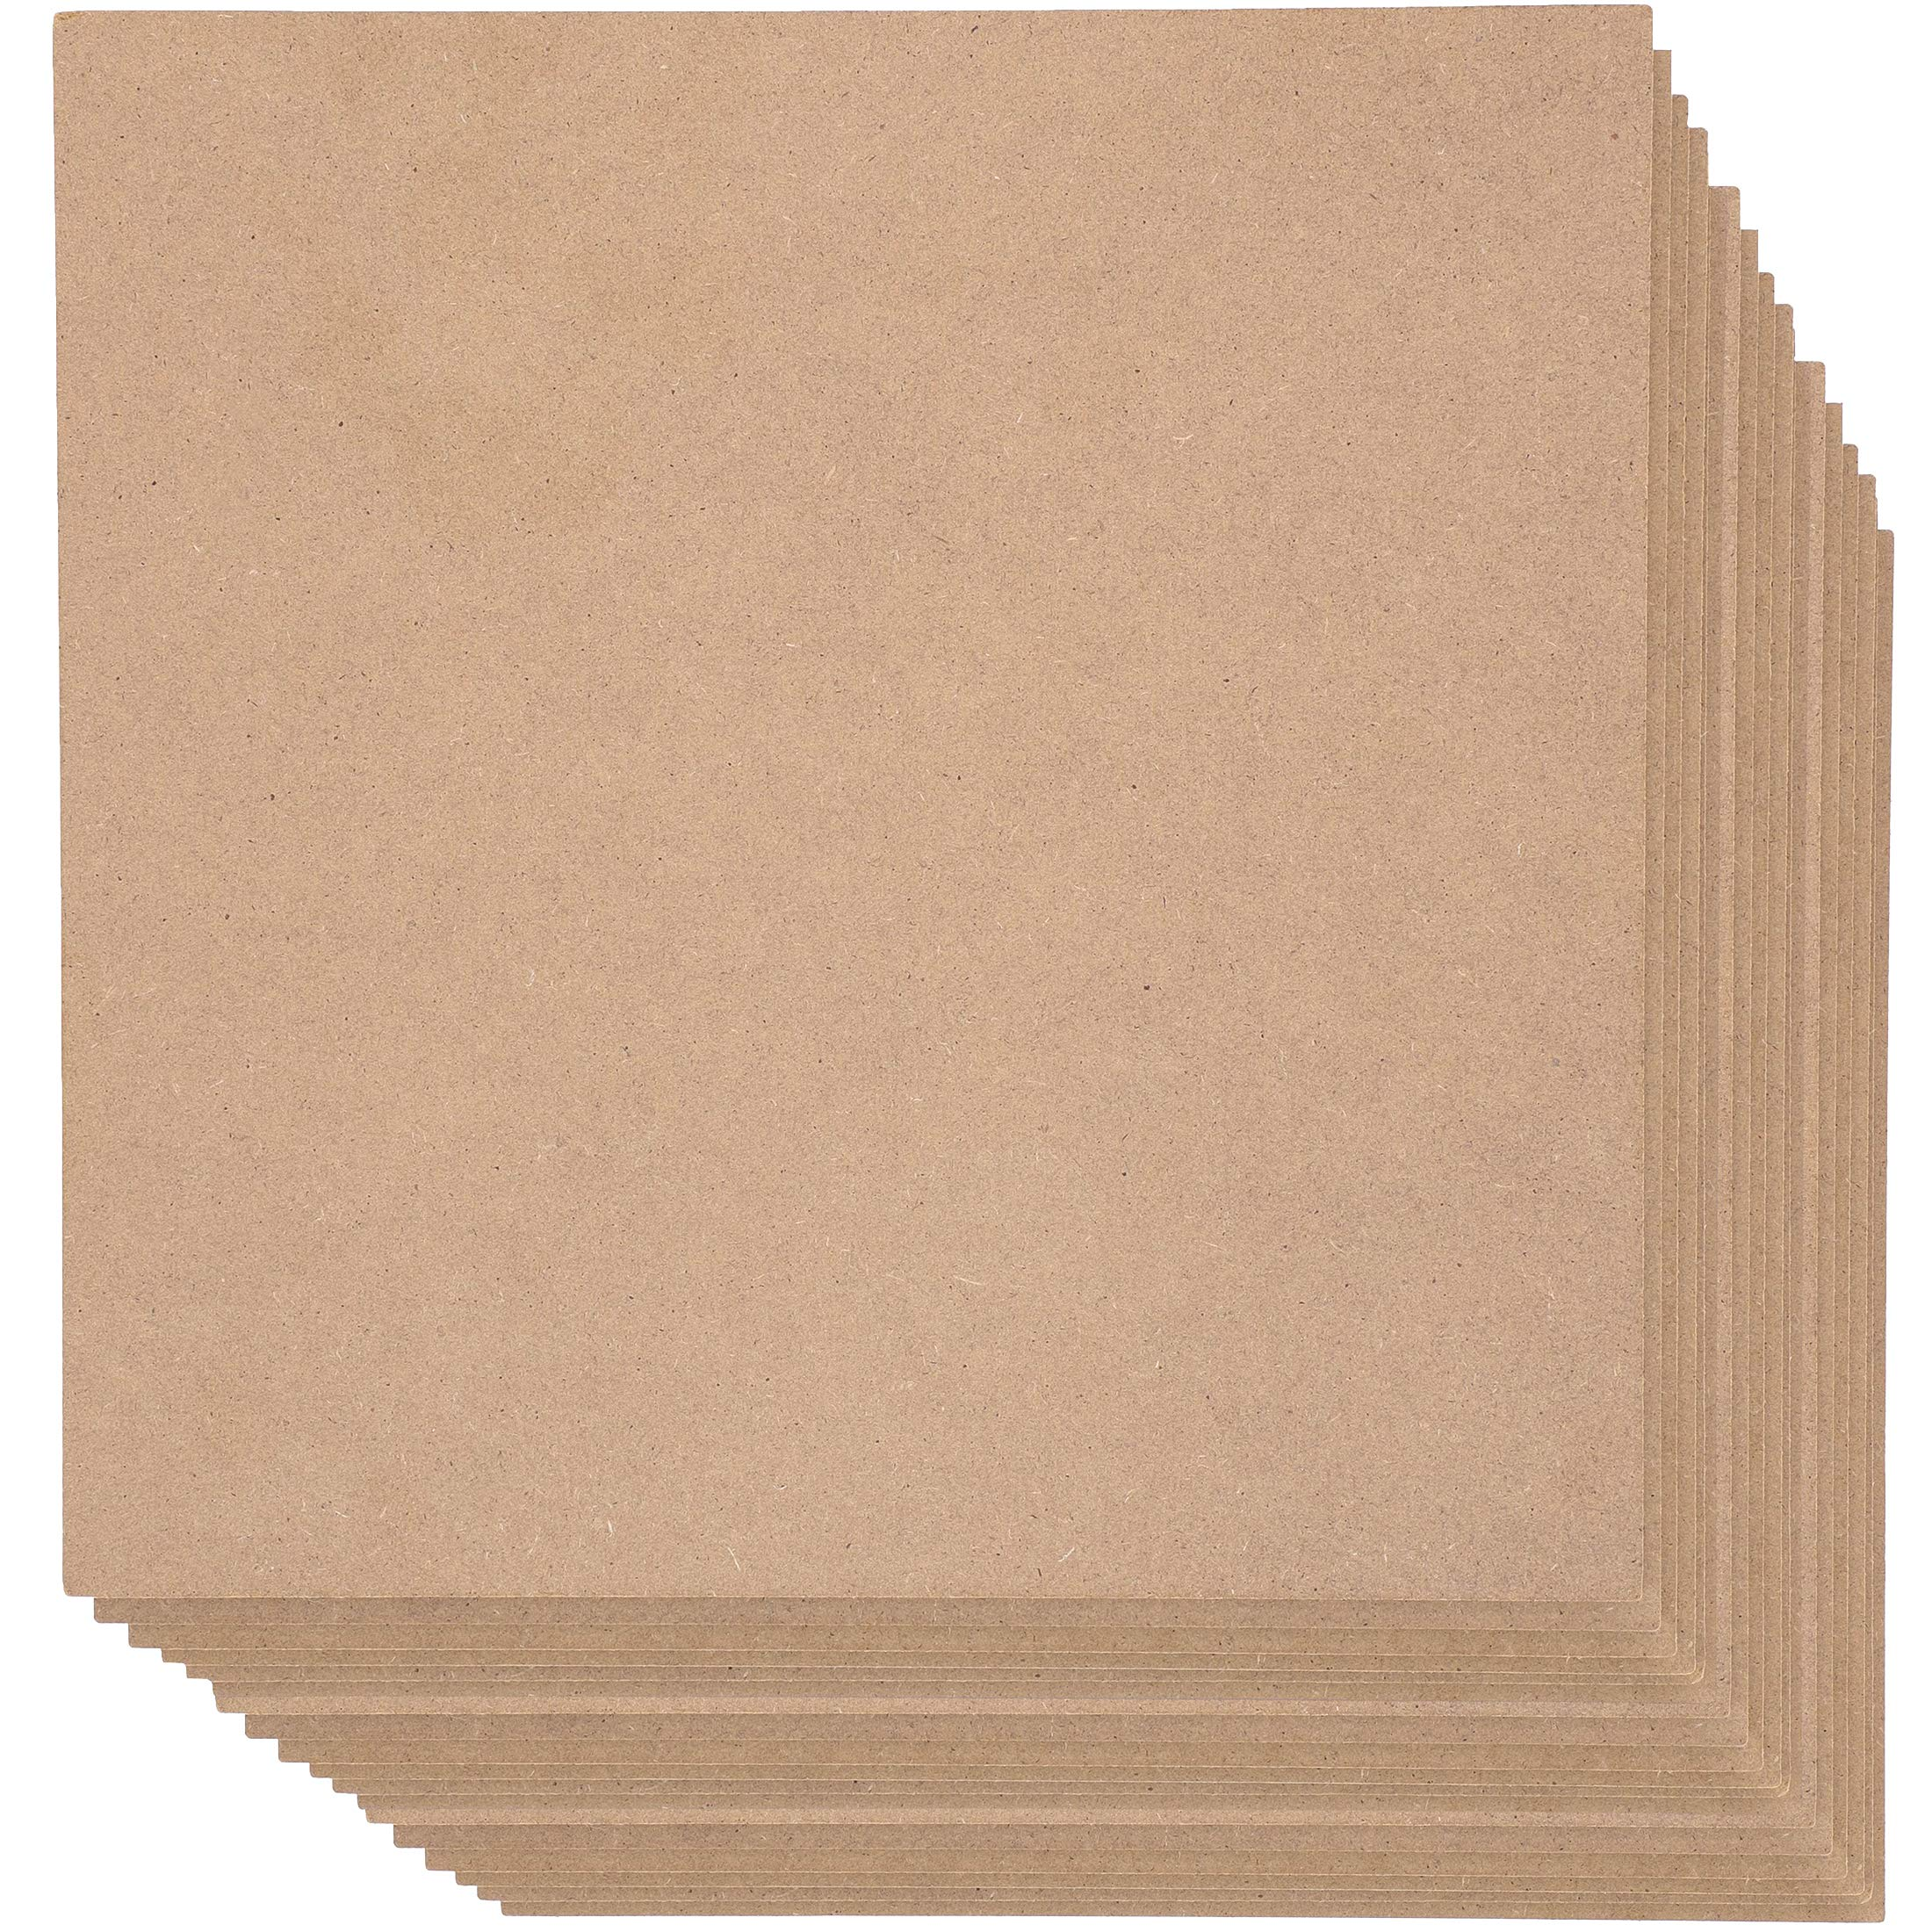 Bright Creations Square MDF Board, 12 Inches (20 Pack) by Bright Creations